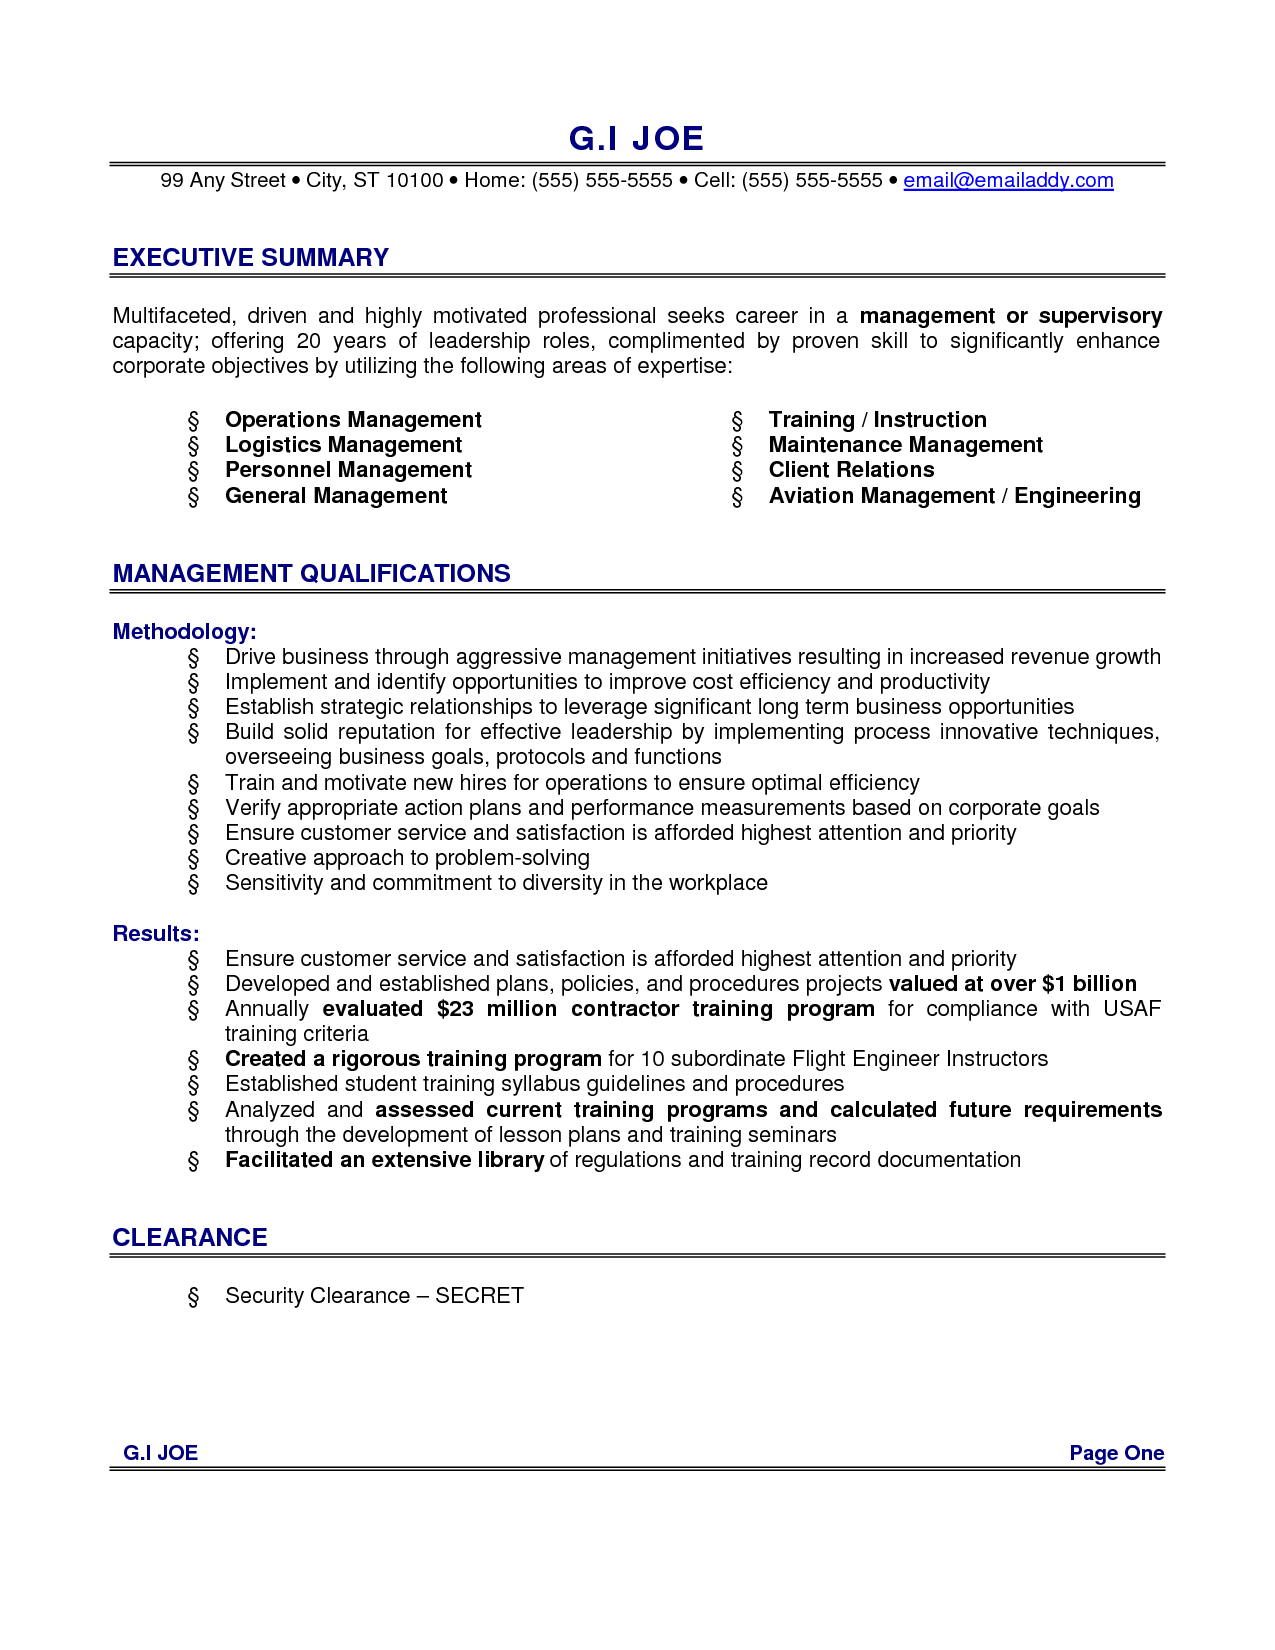 Resume Example Executive Summary With Management Qualifications